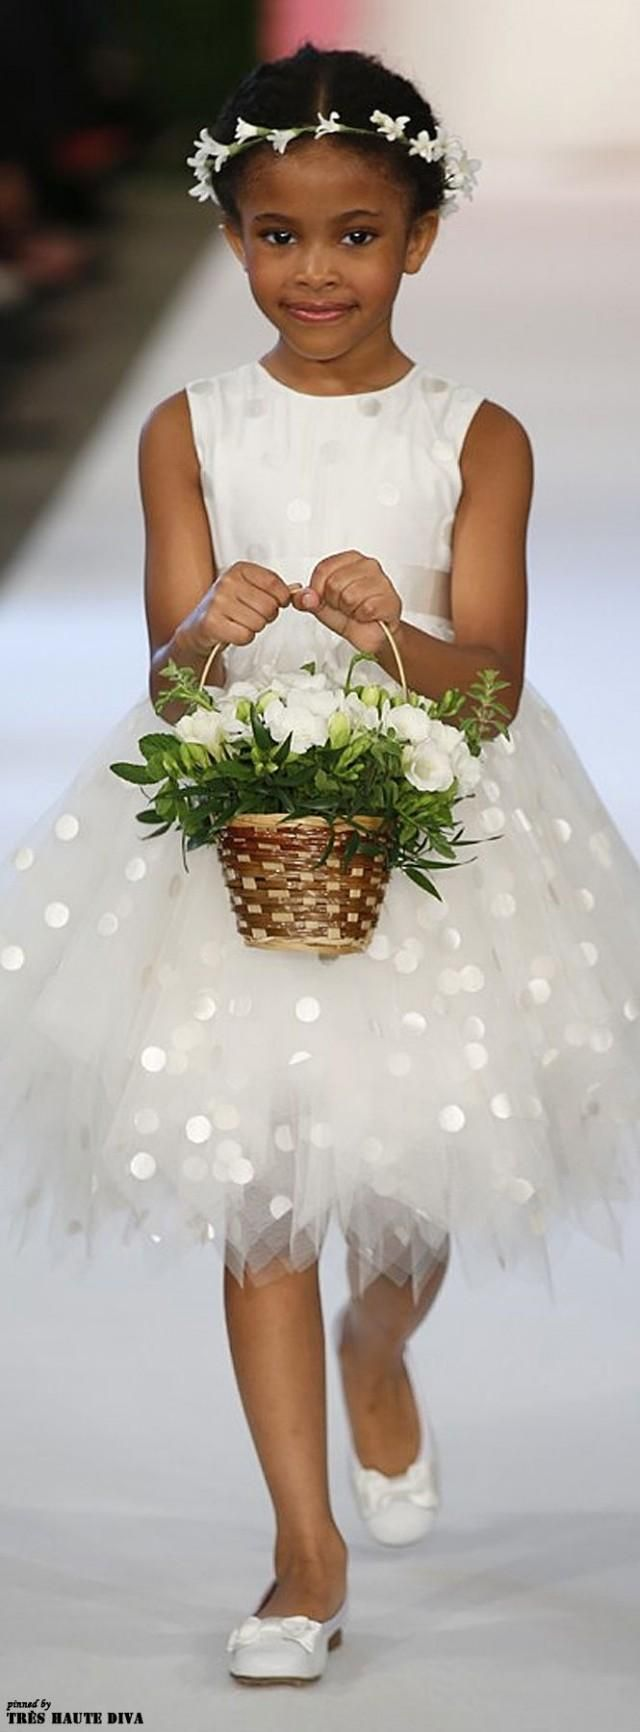 Polka Dot Wedding Theme | polka dot wedding | Pinterest | Weddings ...